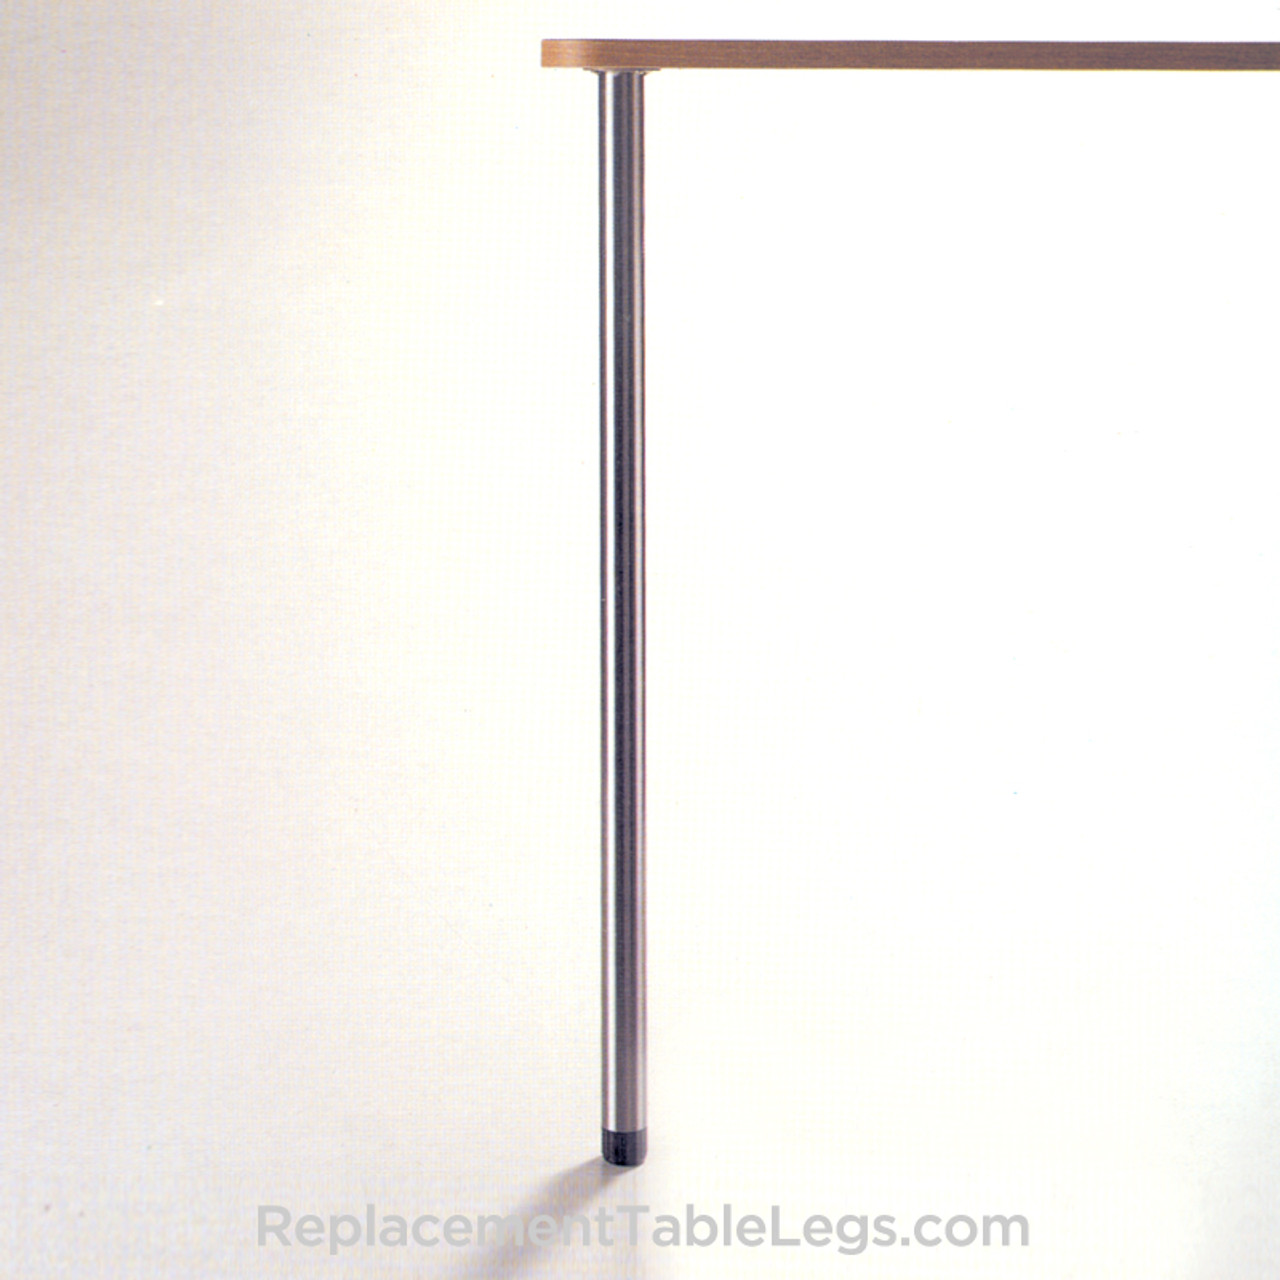 Slim Table Leg, 27-3/4'' height, 1-3/8'' diameter leg, 1'' adjustable foot, SINGLE